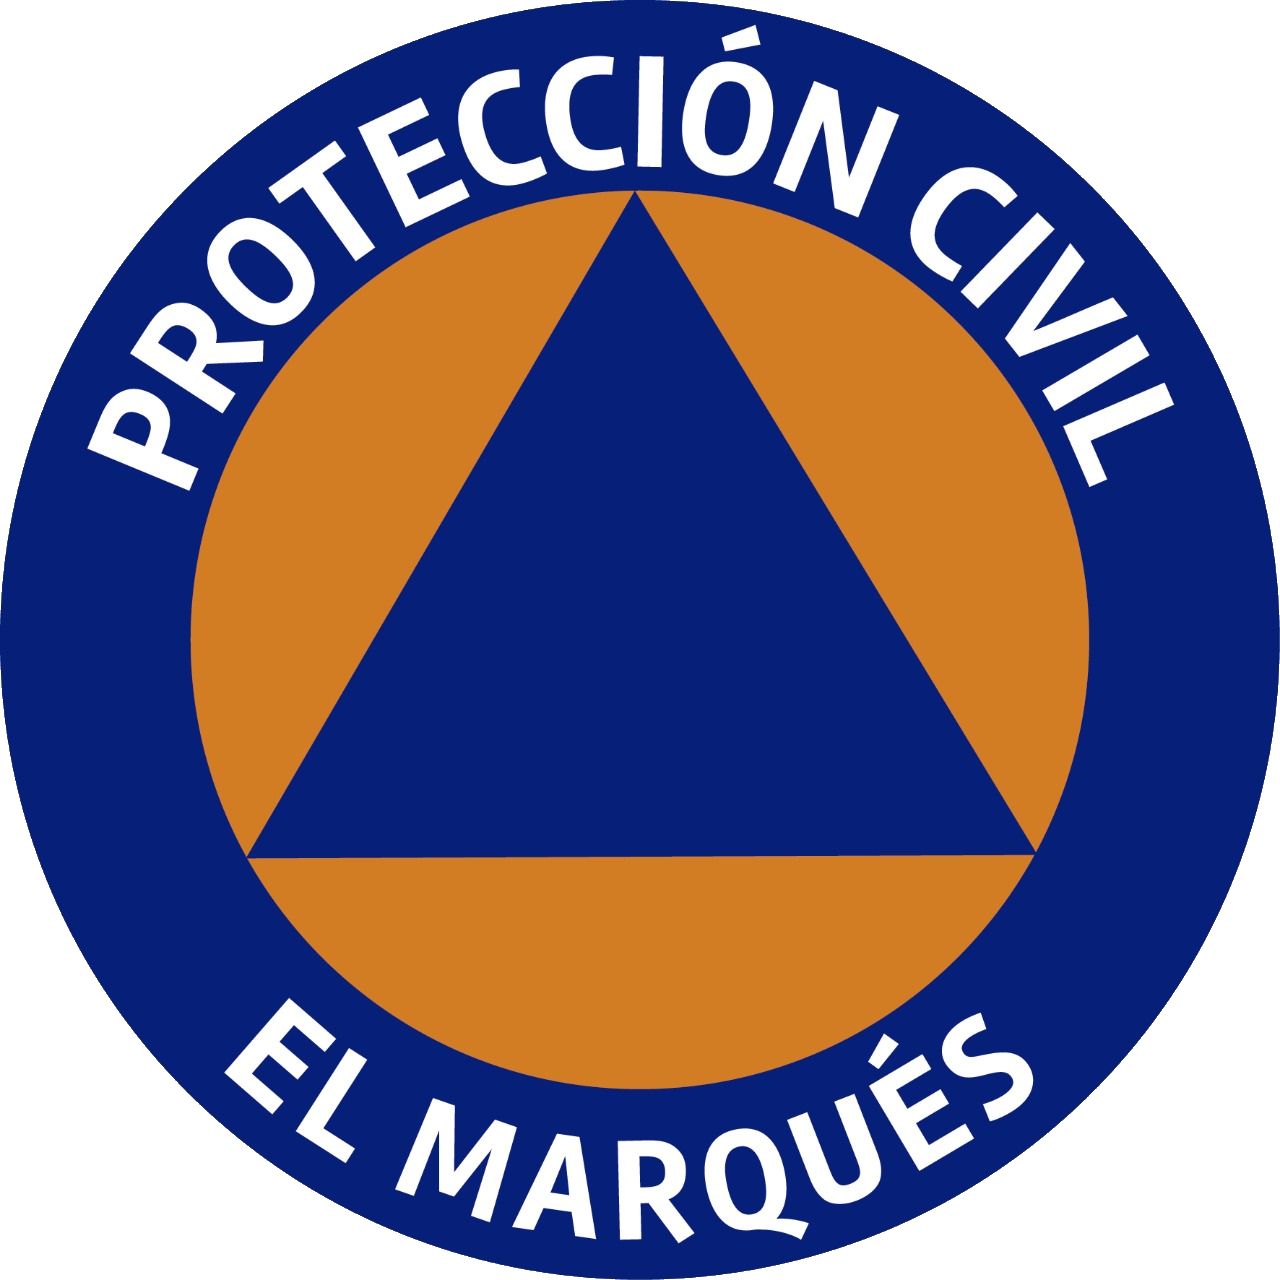 PCMARQUES